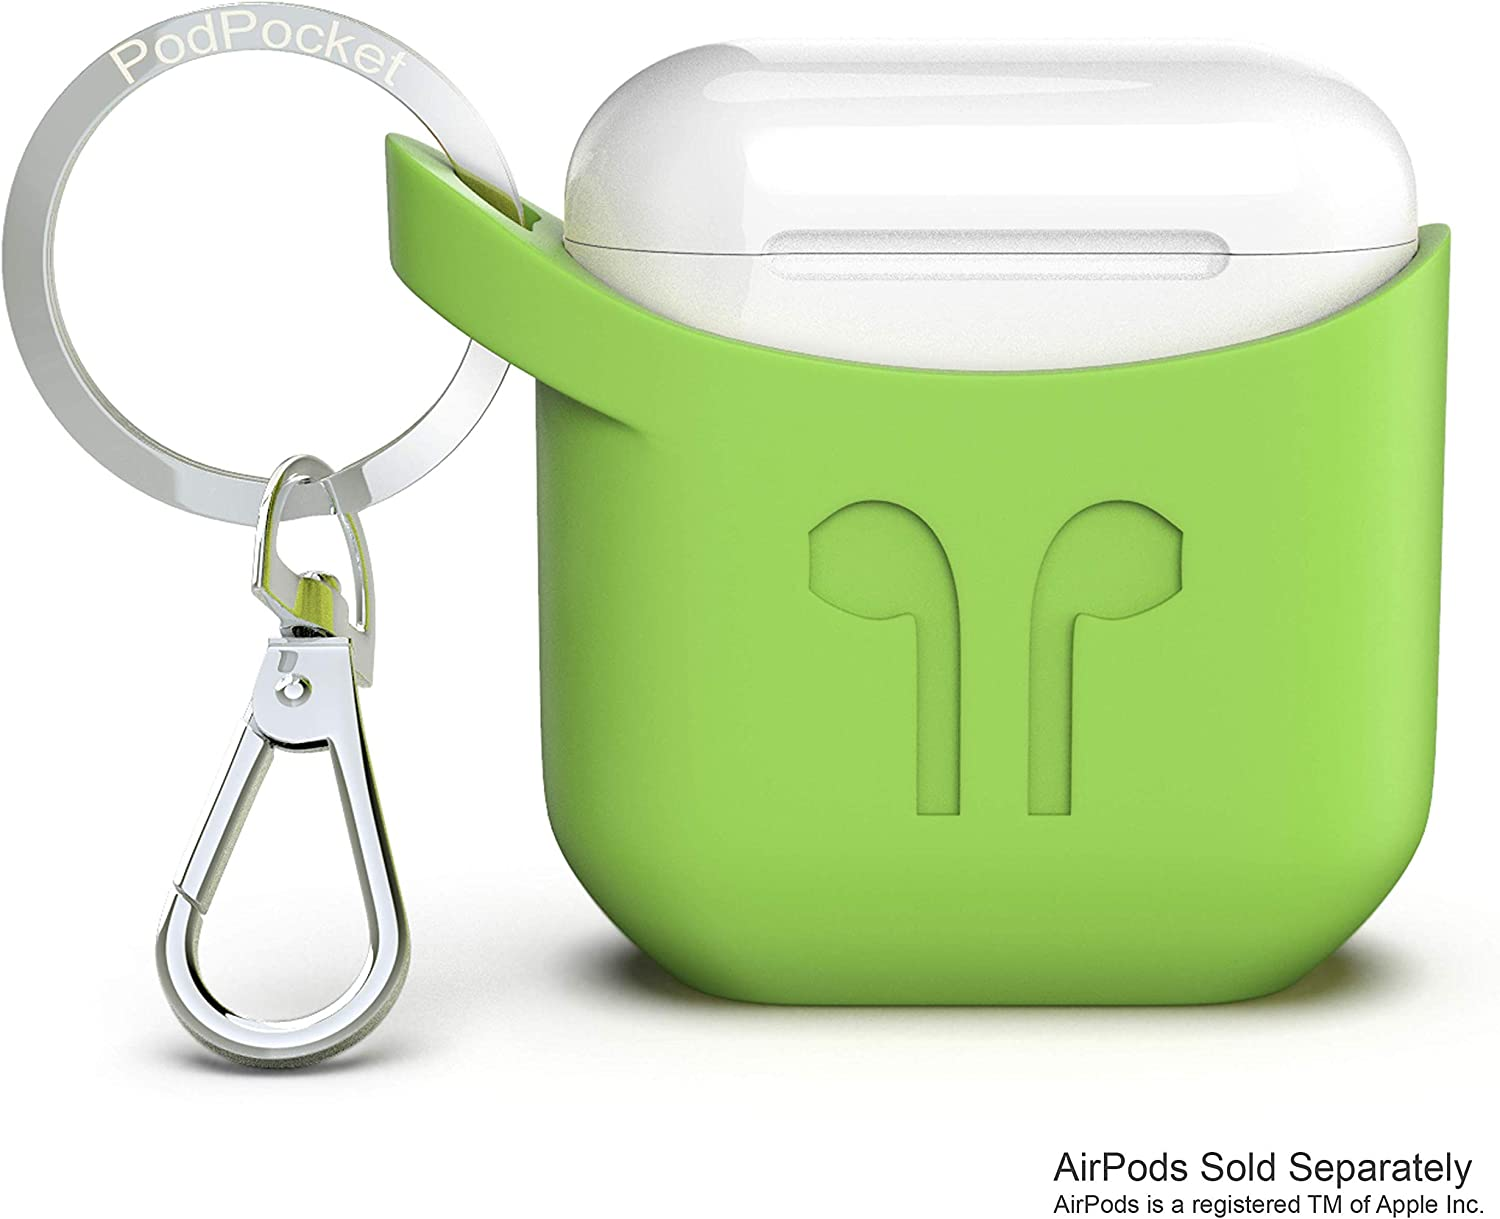 Apple Airpod Keychain Carrying Case by PodPocket |Best Reviewed Premium Silicone & Protective Case Cover/Skin| Slides Easily into Pocket and Has Open Bottom for Charging -(Pear Green)